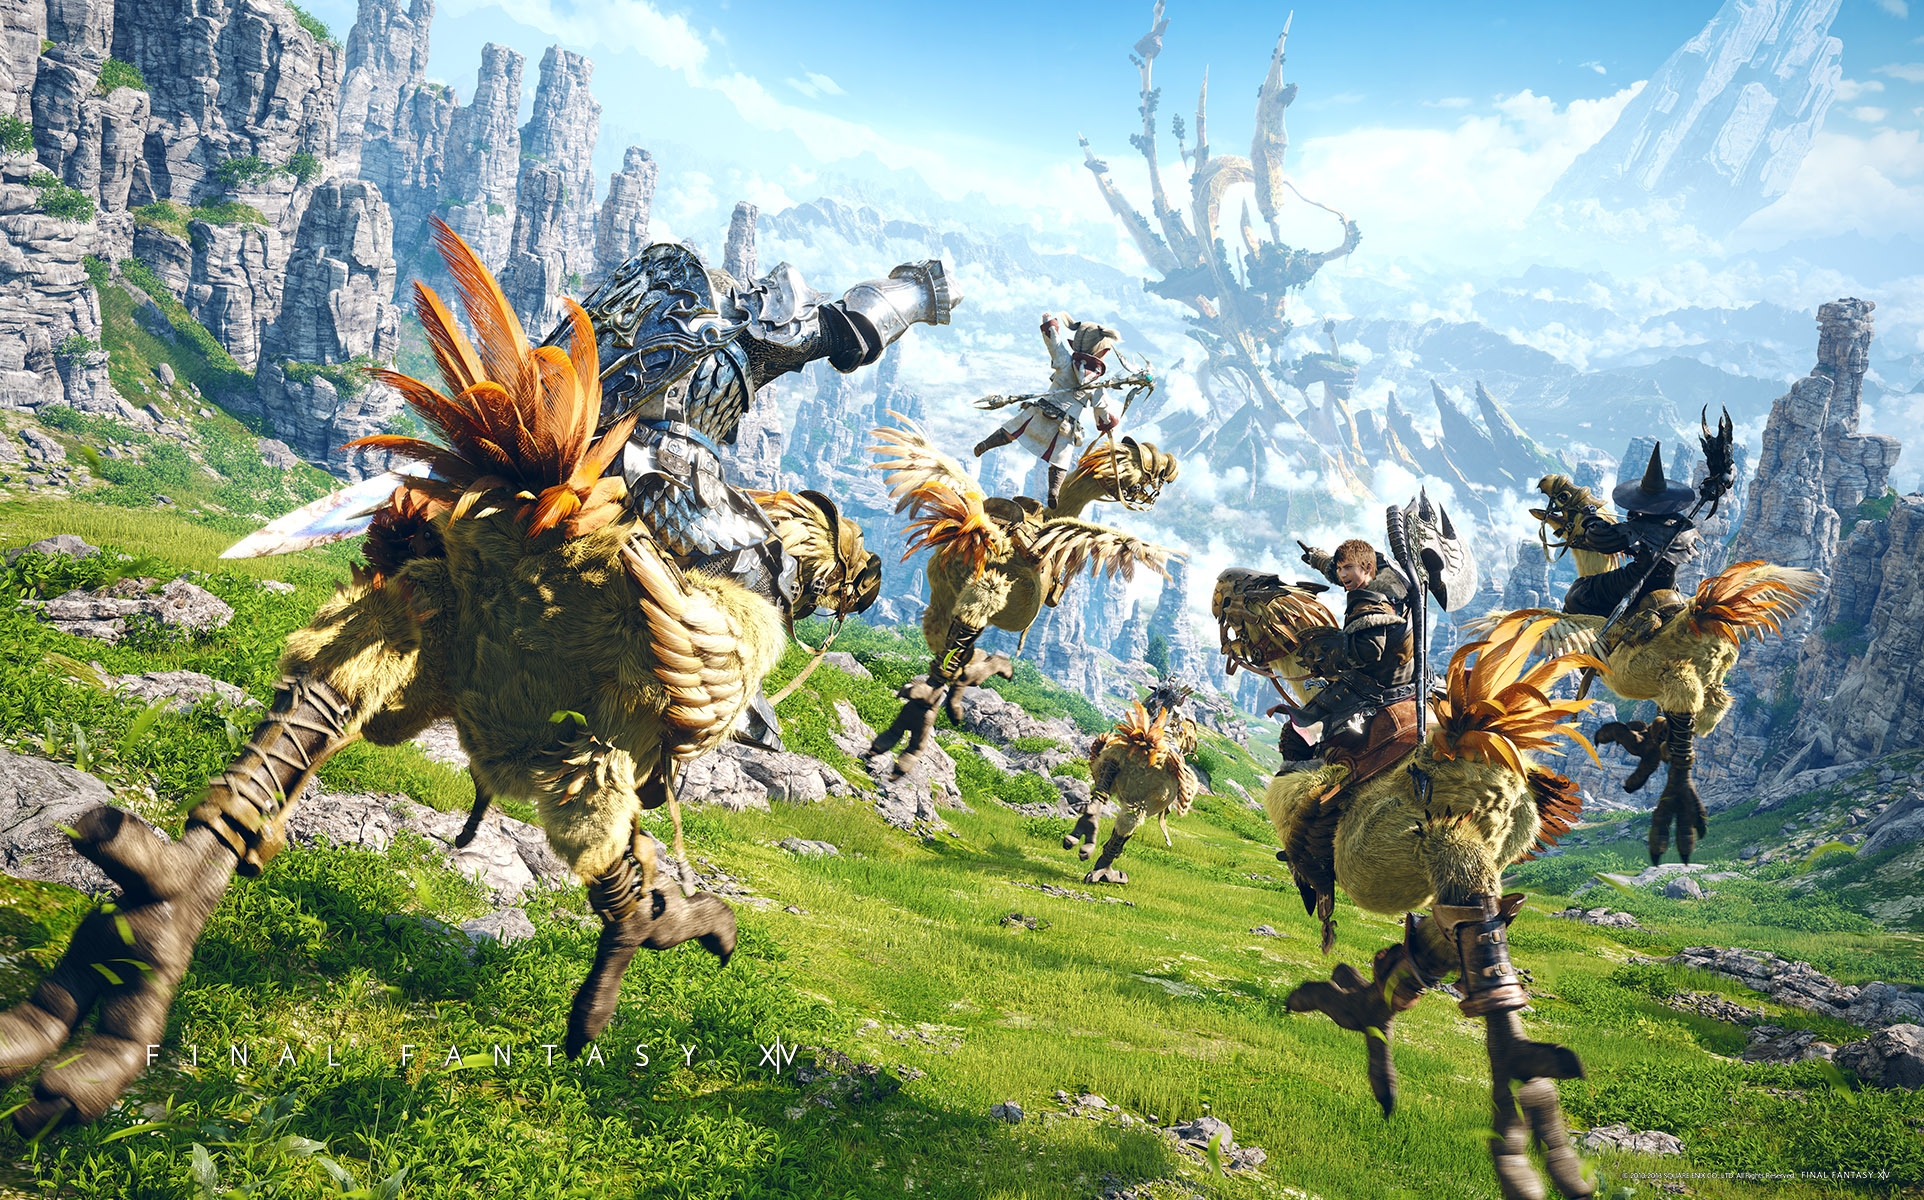 Free download Final Fantasy XIV Wallpapers [1924x1200] for